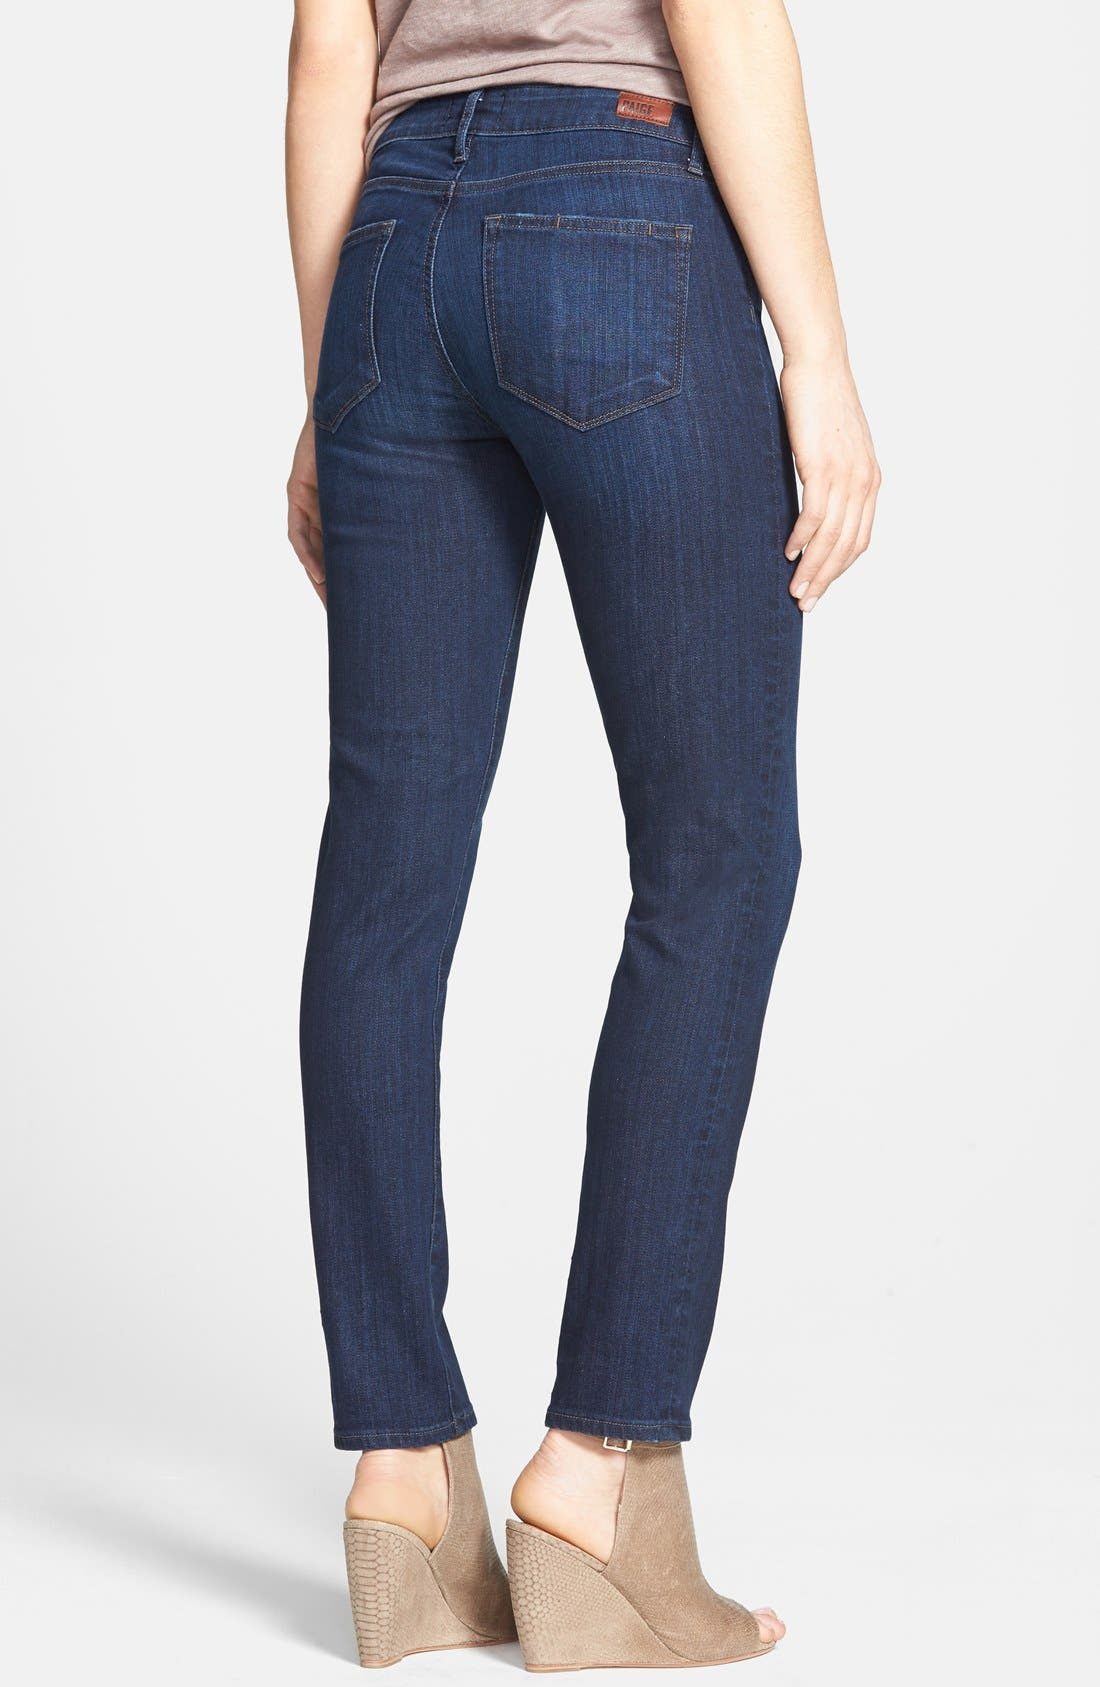 Alternate Image 2  - Paige Denim 'Skyline' Ankle Peg Skinny Jeans (Dixie) (Nordstrom Exclusive)